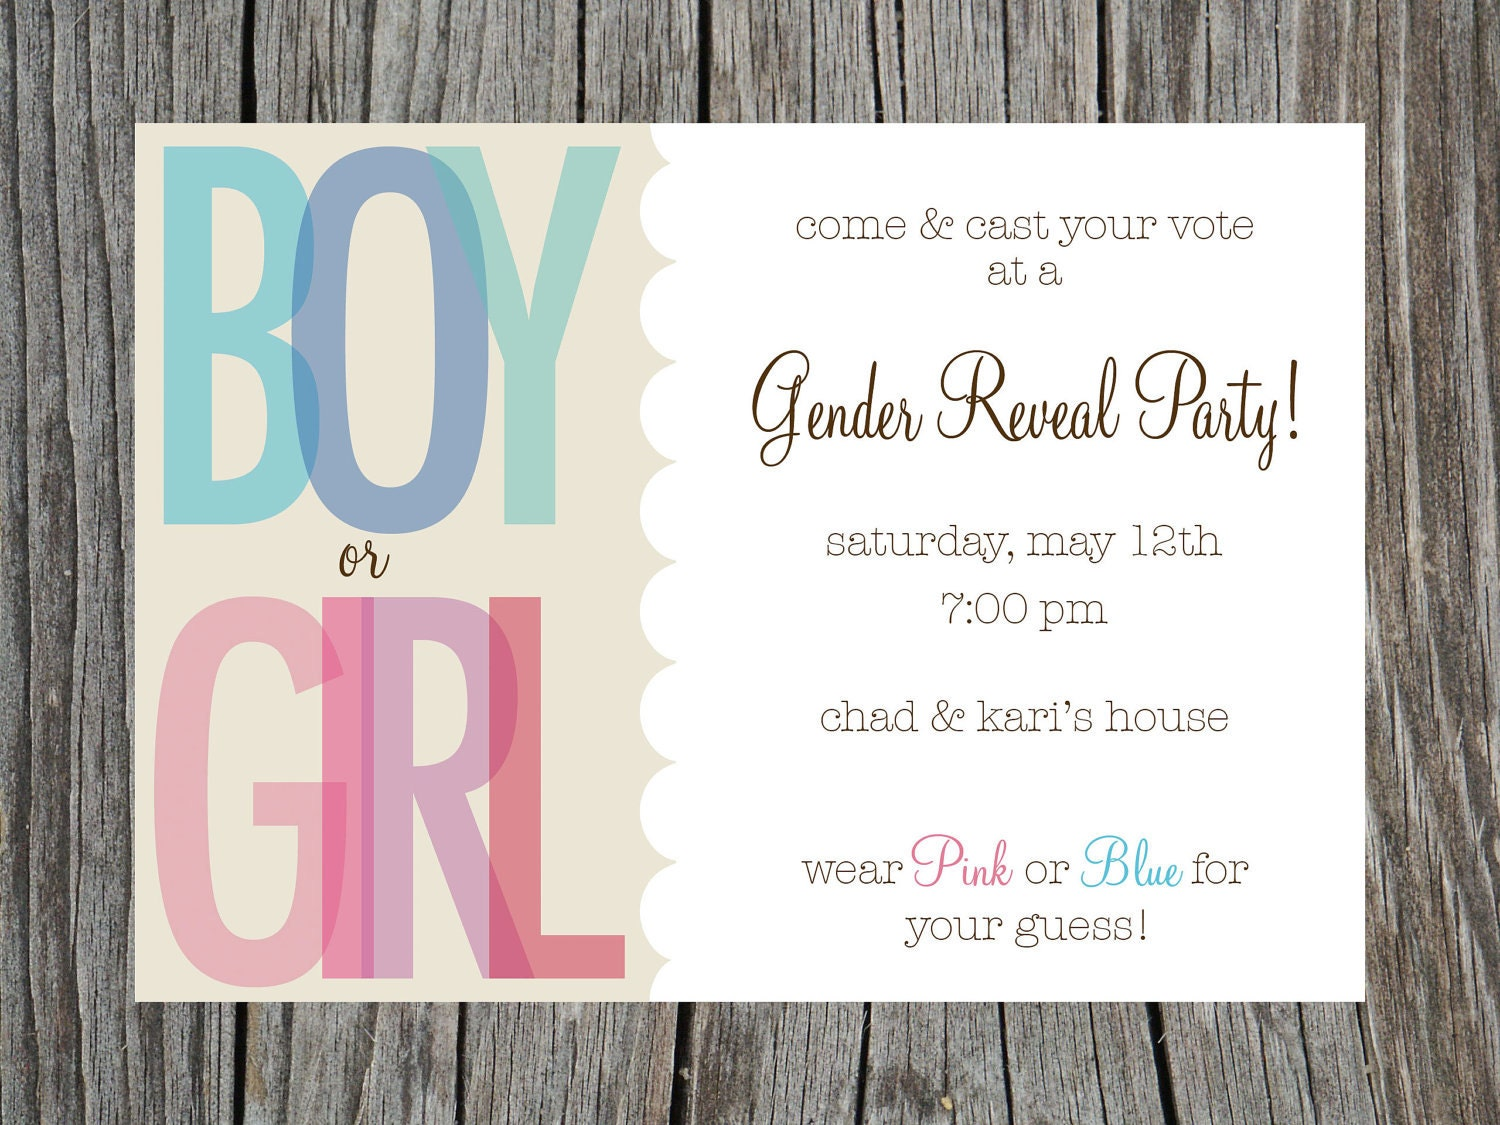 It's just an image of Sassy Free Printable Gender Reveal Party Invitations